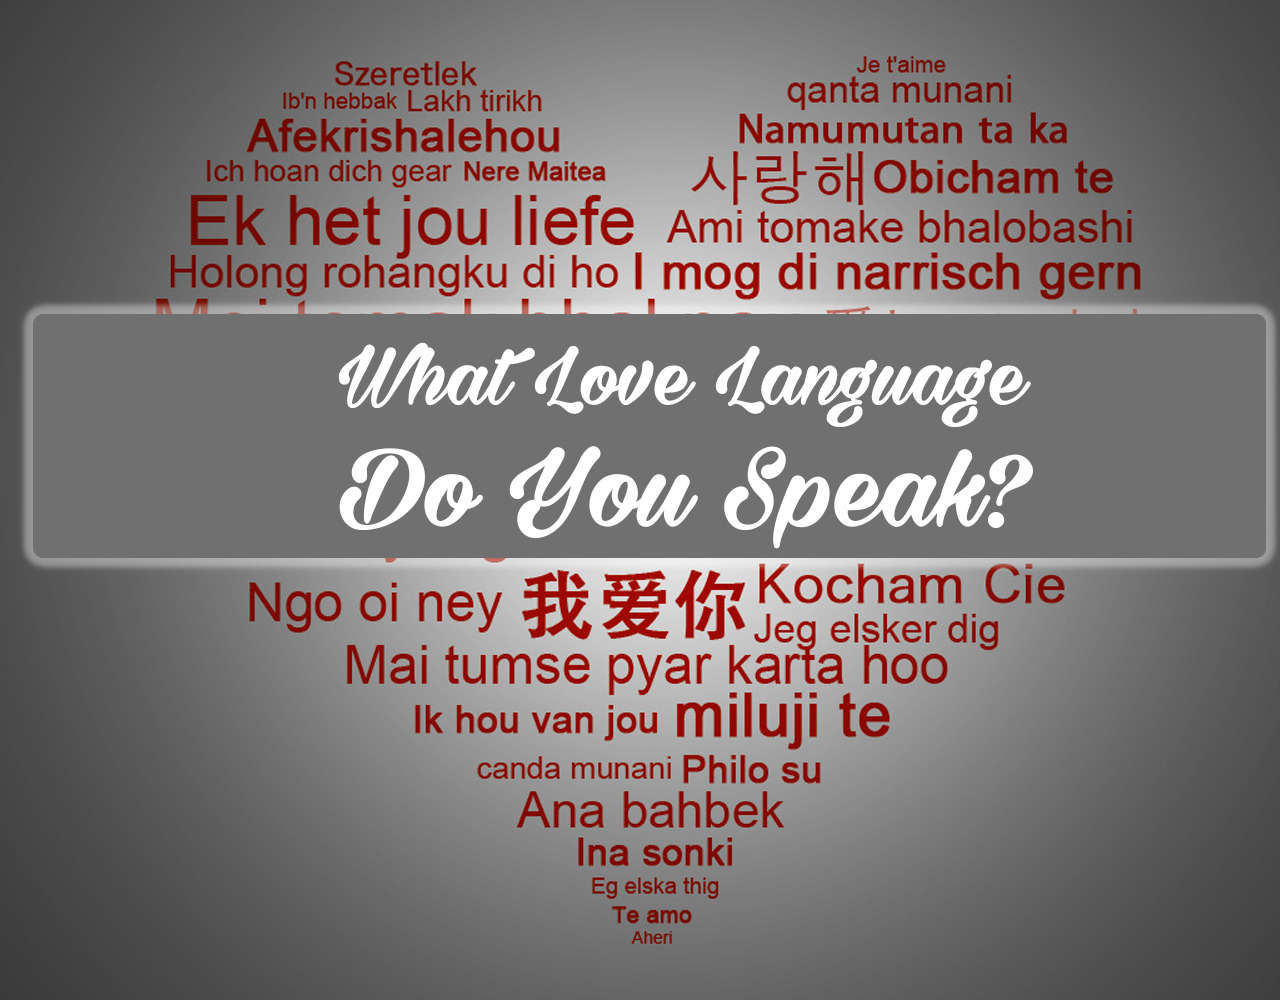 Language test your love whats What Is